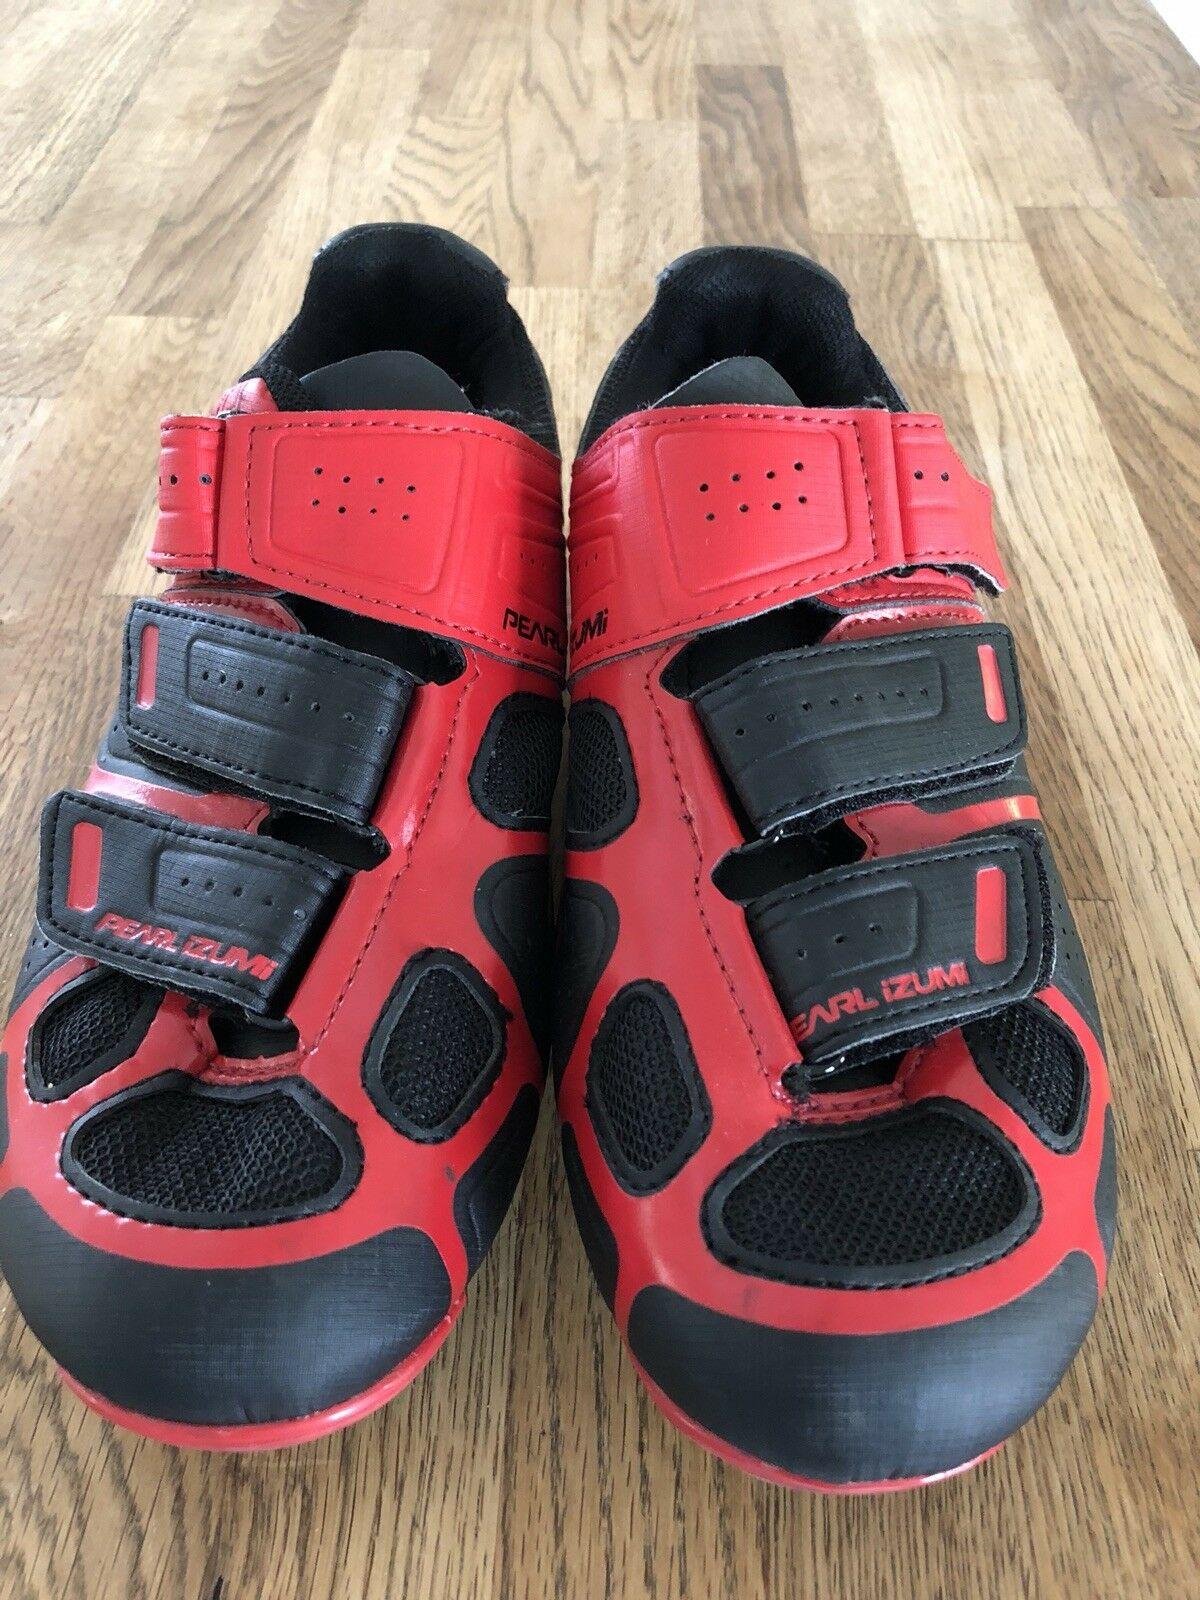 Pearl Izumi Cycling  shoes 39.0  authentic